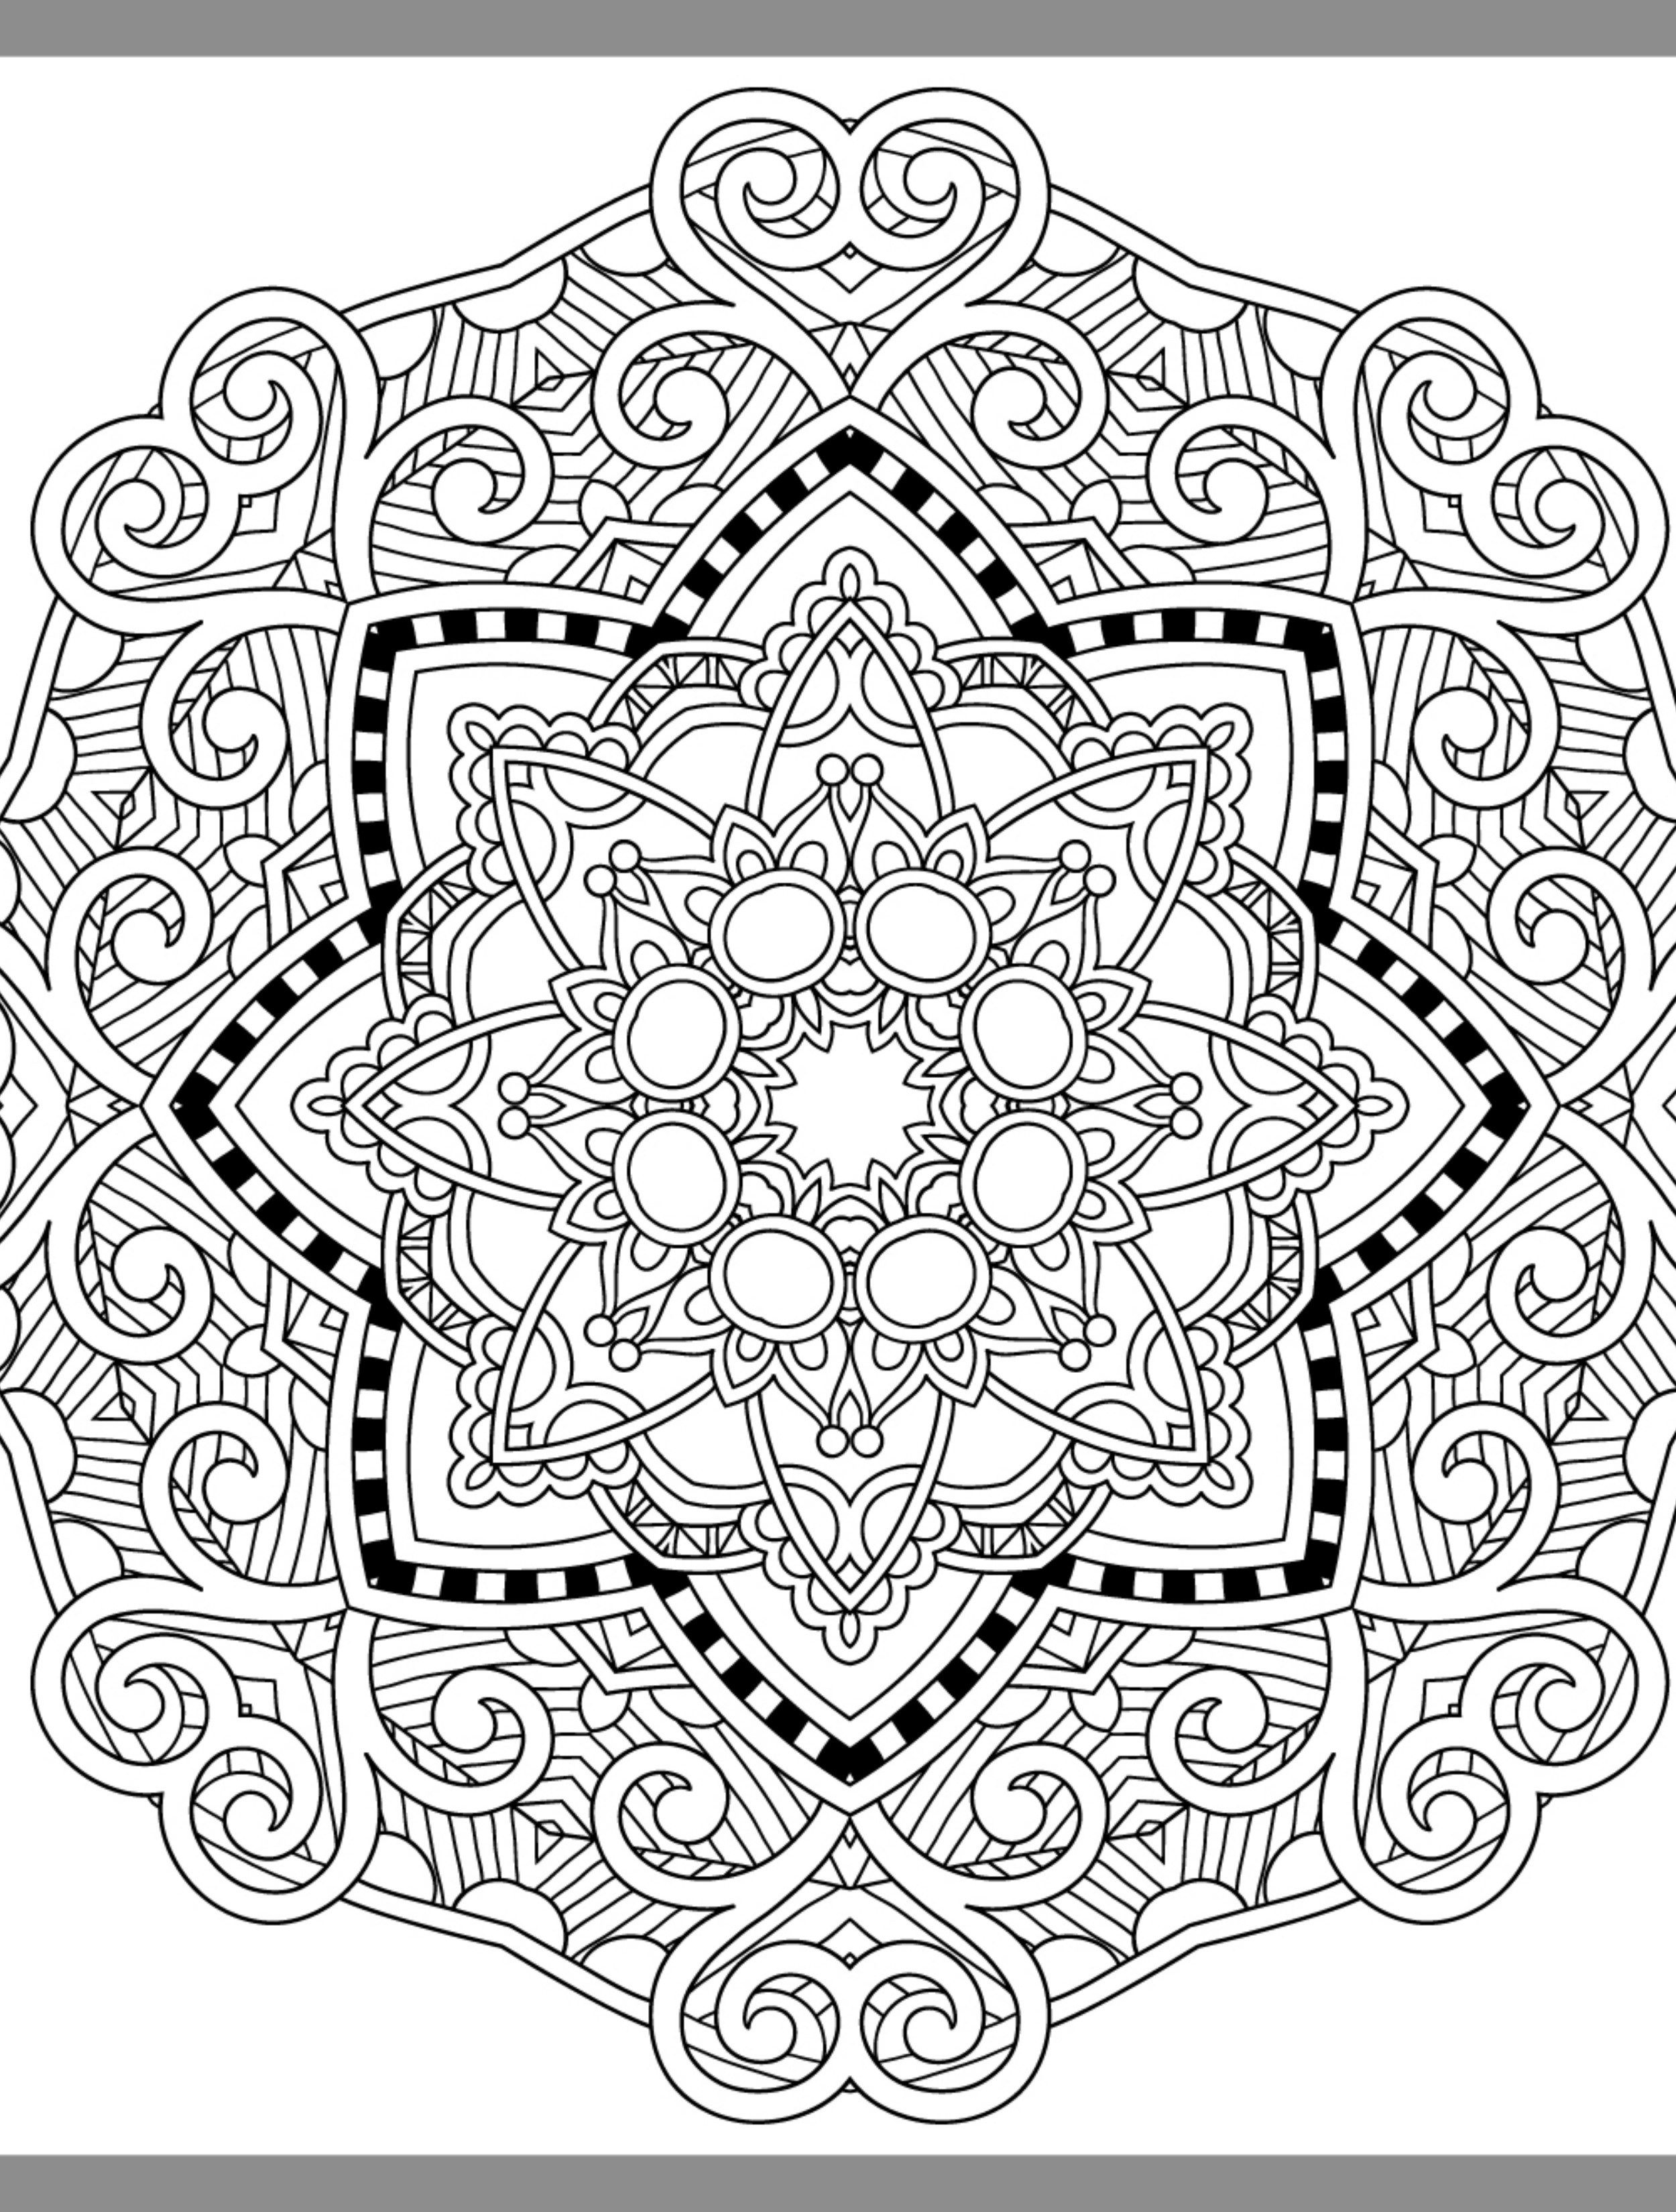 24 More Free Printable Adult Coloring Pages | Printable ... | free online mandala coloring pages for adults